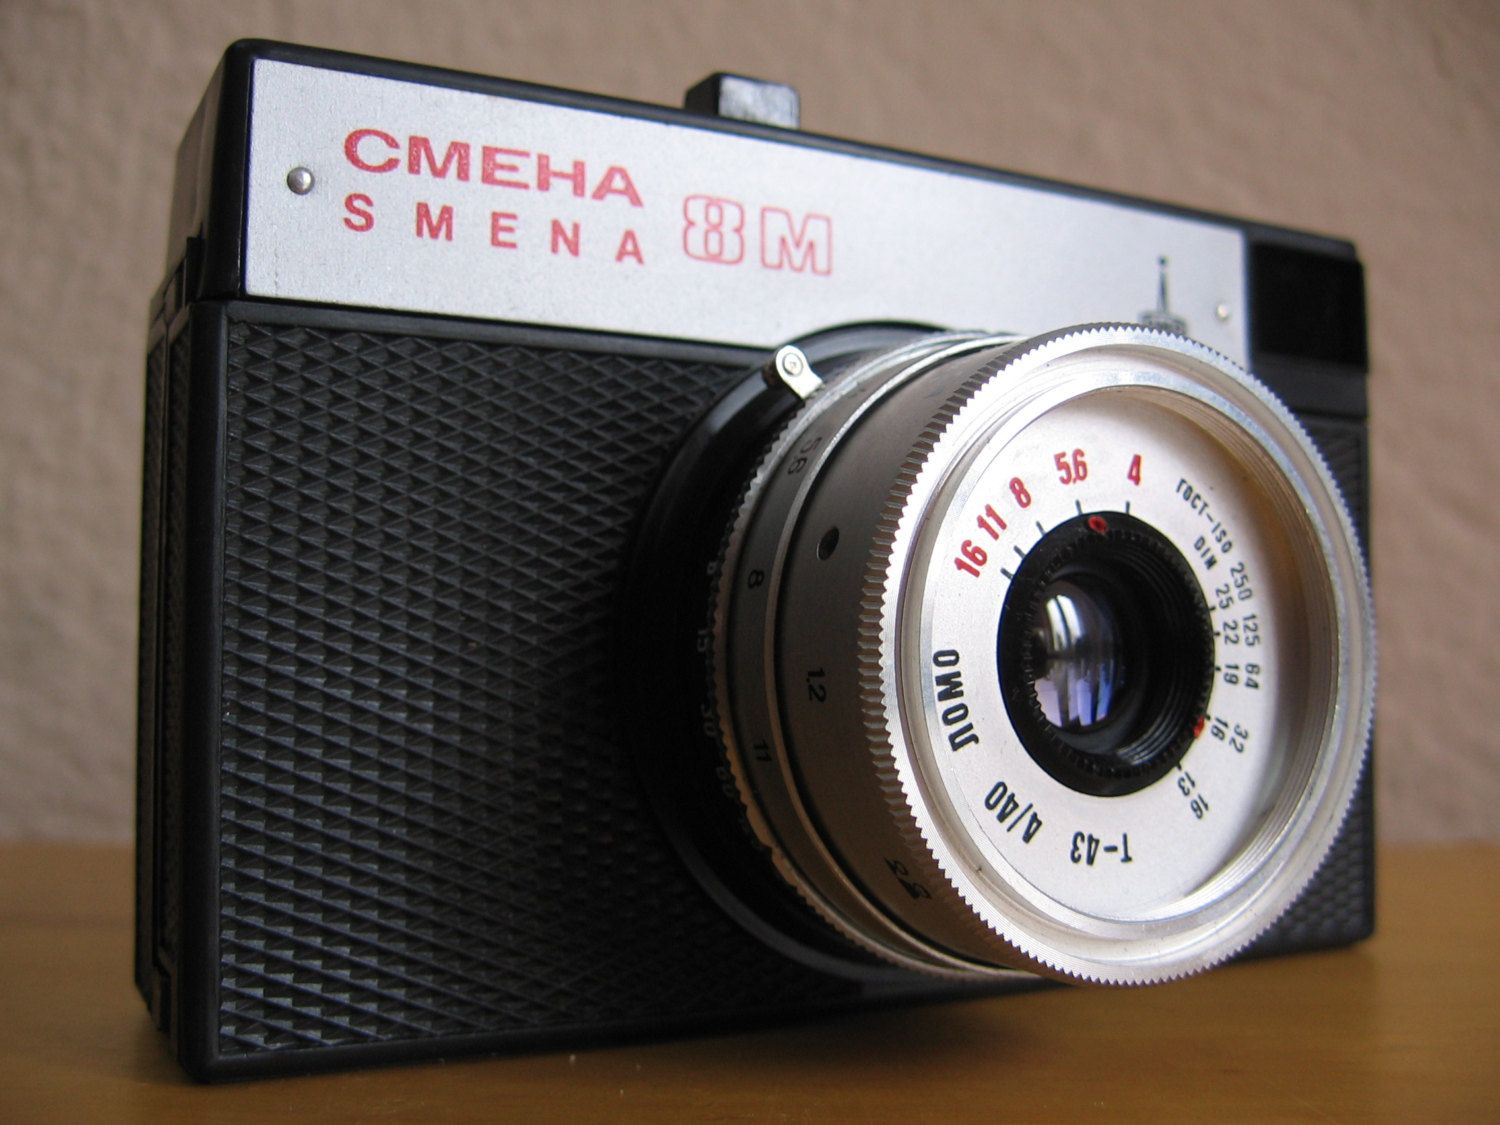 Lomo Smena 8M 35mm Camera Made in USSR / Russia / Soviet Union - Vintage Camera / Vintage Russian Camera / Lomo Cmeha by BeeEyeNGO on Etsy